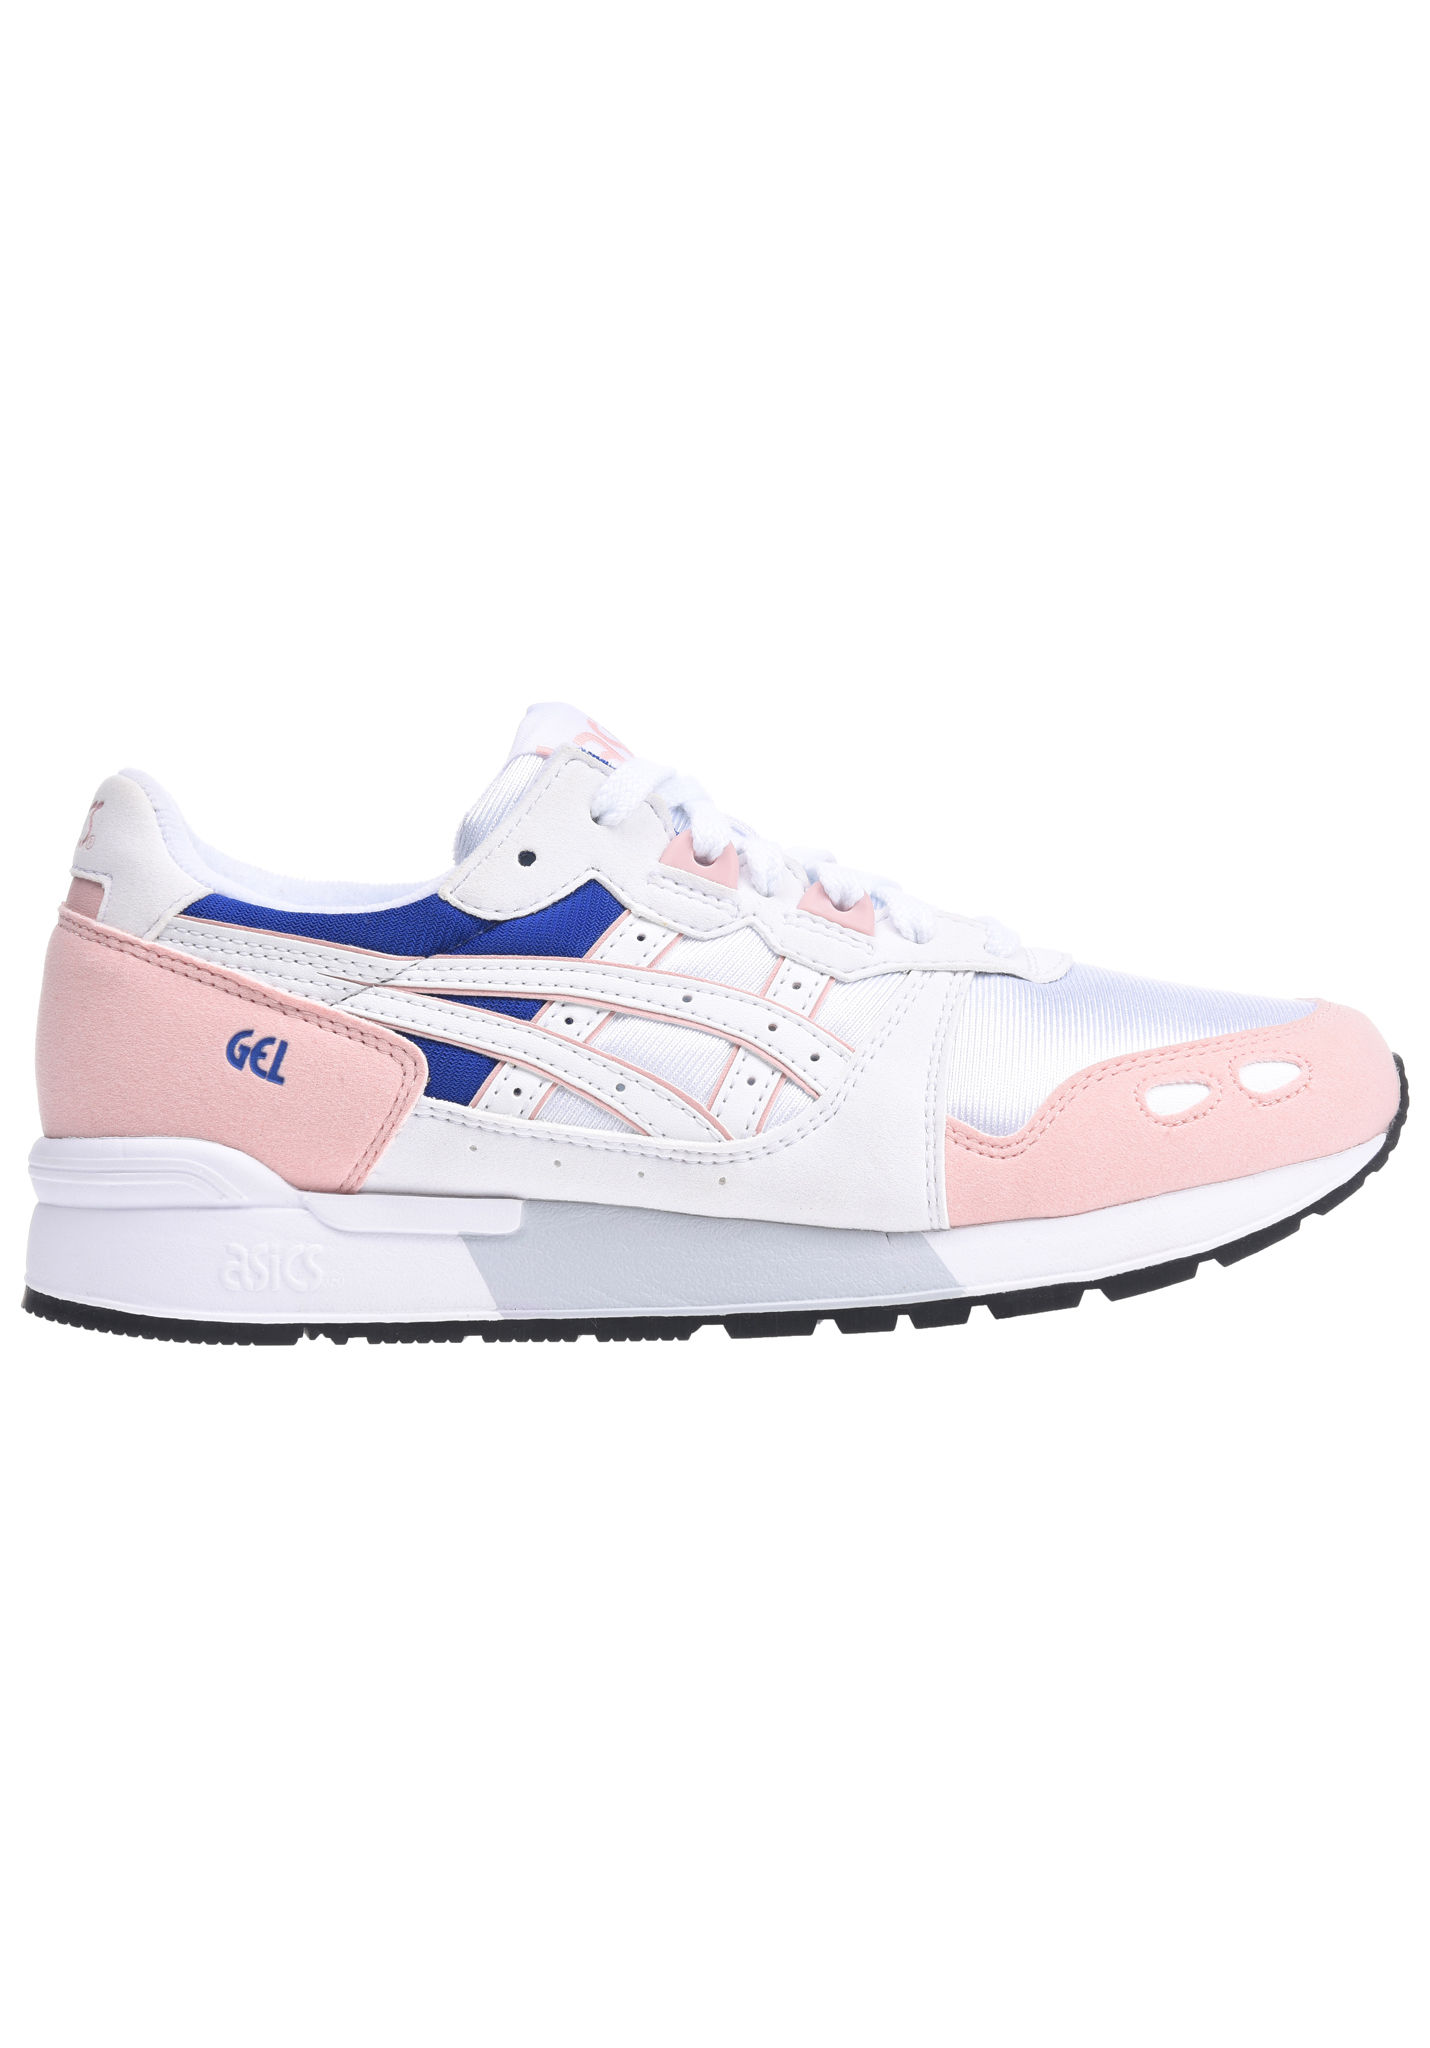 2e8848fb36d3 Asics Tiger Gel-Lyte - Sneakers for Women - Pink - Planet Sports